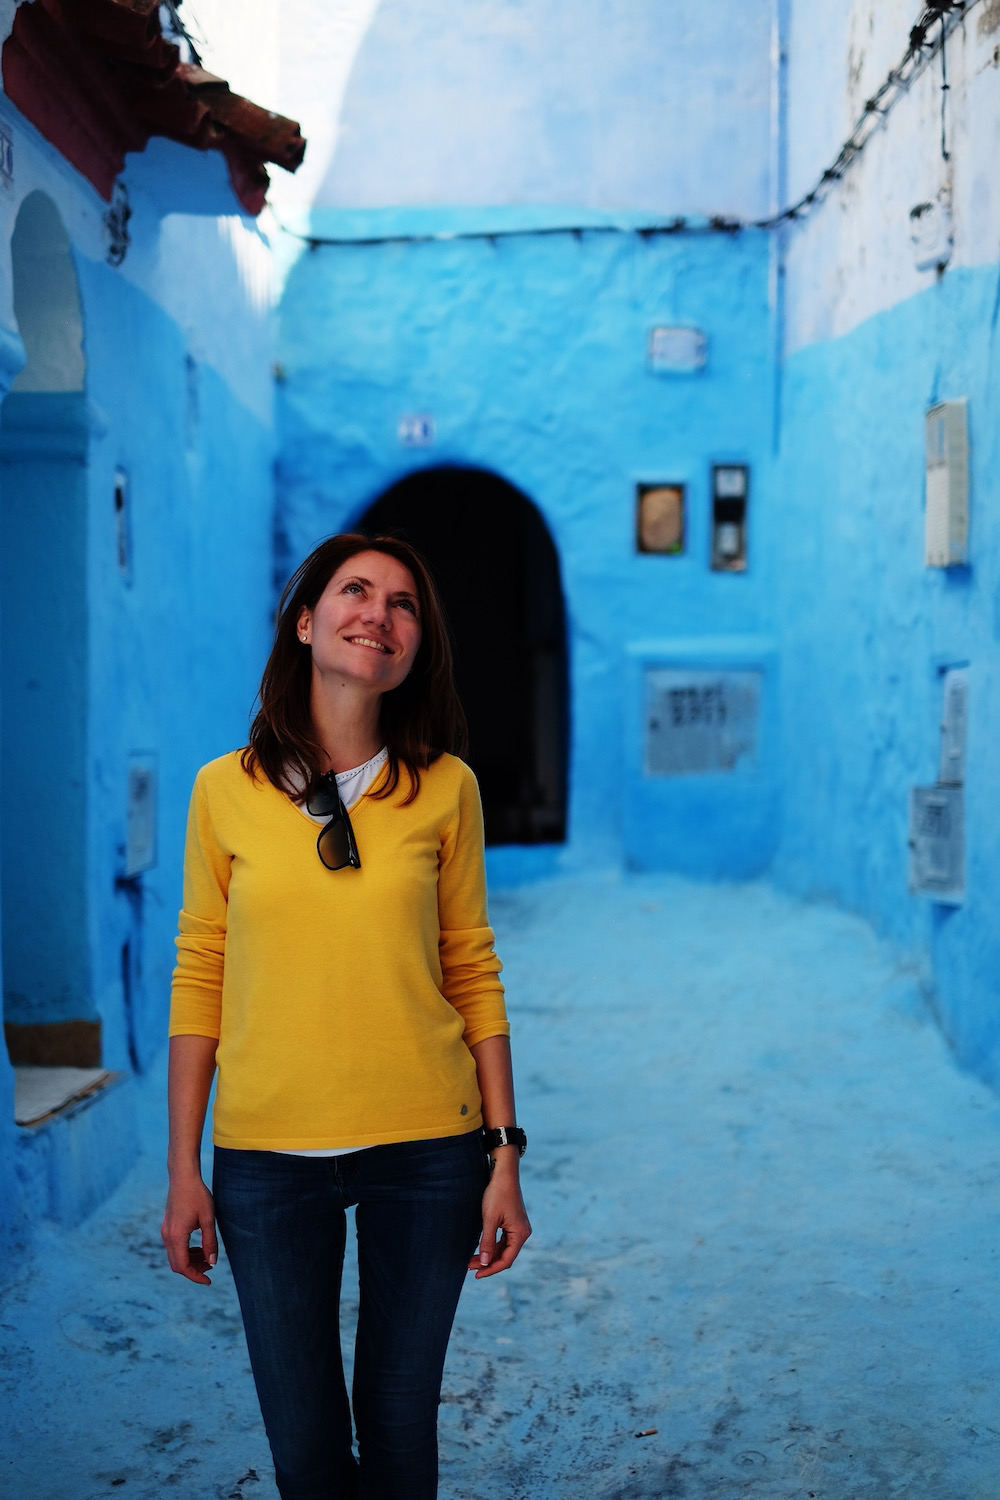 In Chefchaouen